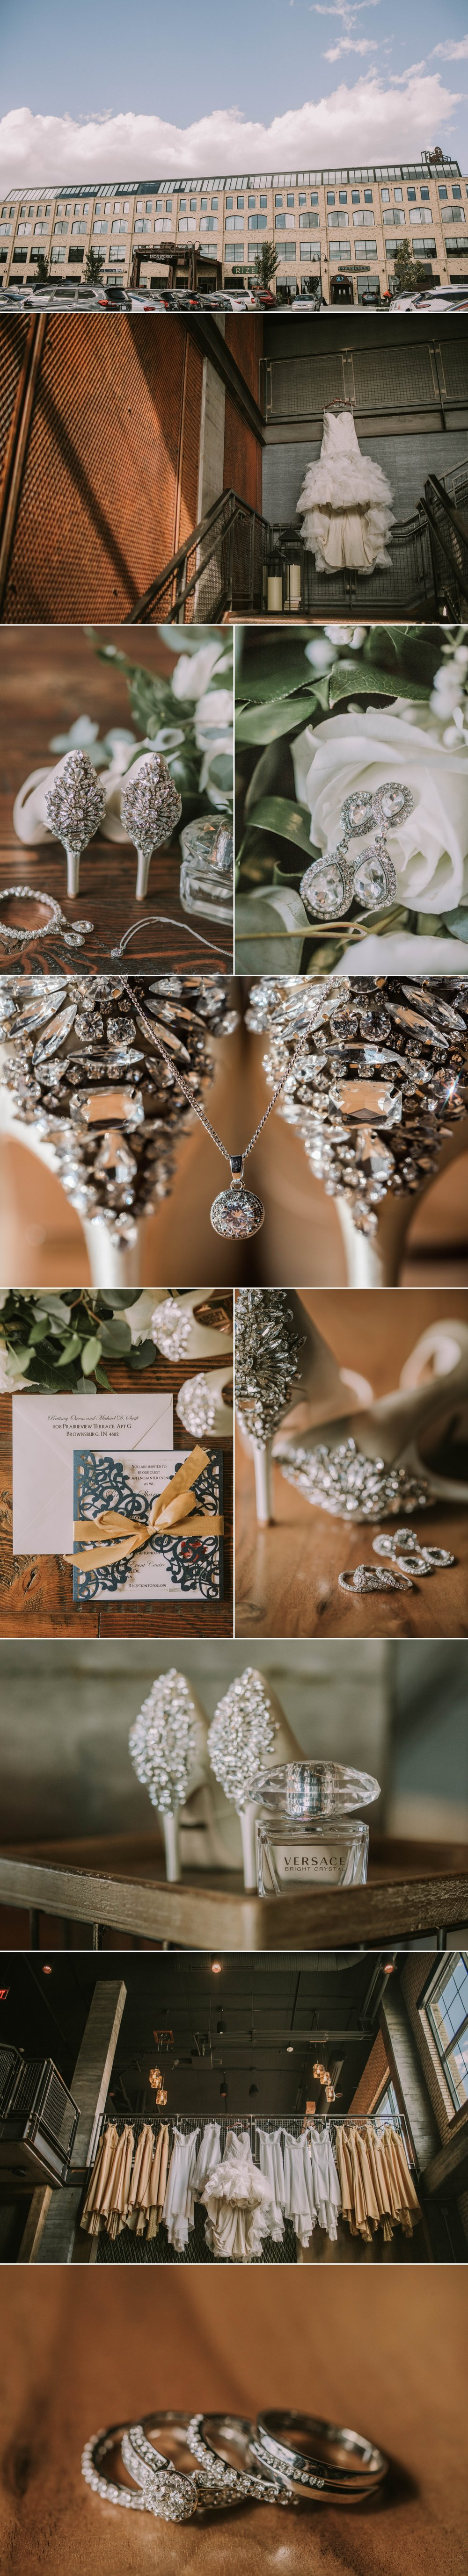 ironworks hotel bridal details wedding day carmel indiana